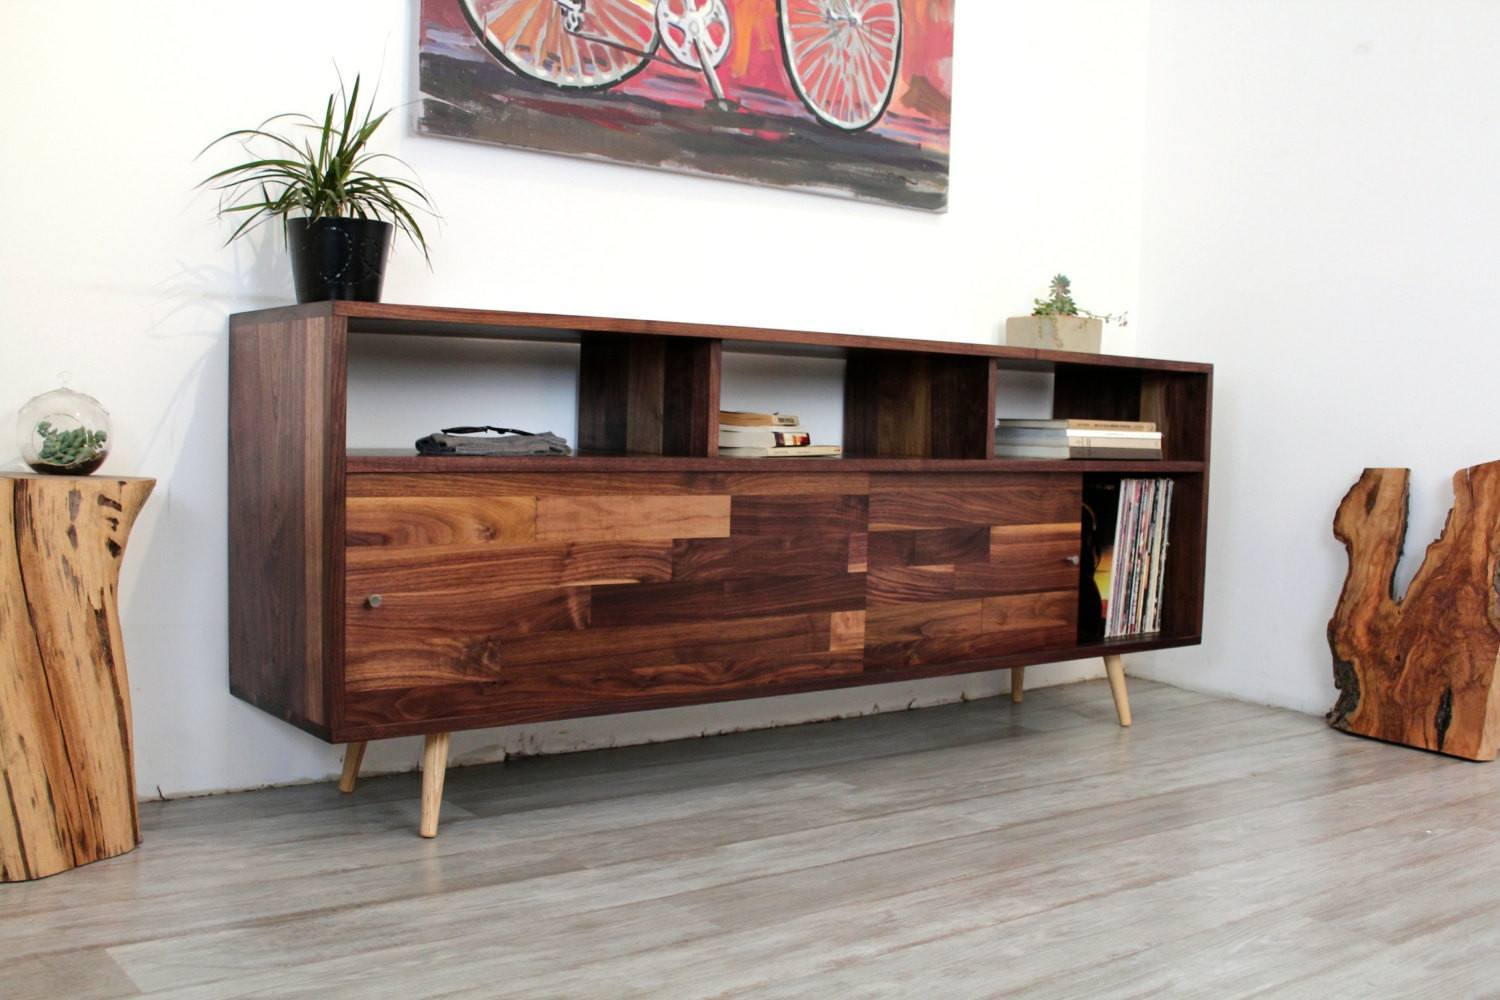 Mid Century Record Storage Console - JeremiahCollection - 2